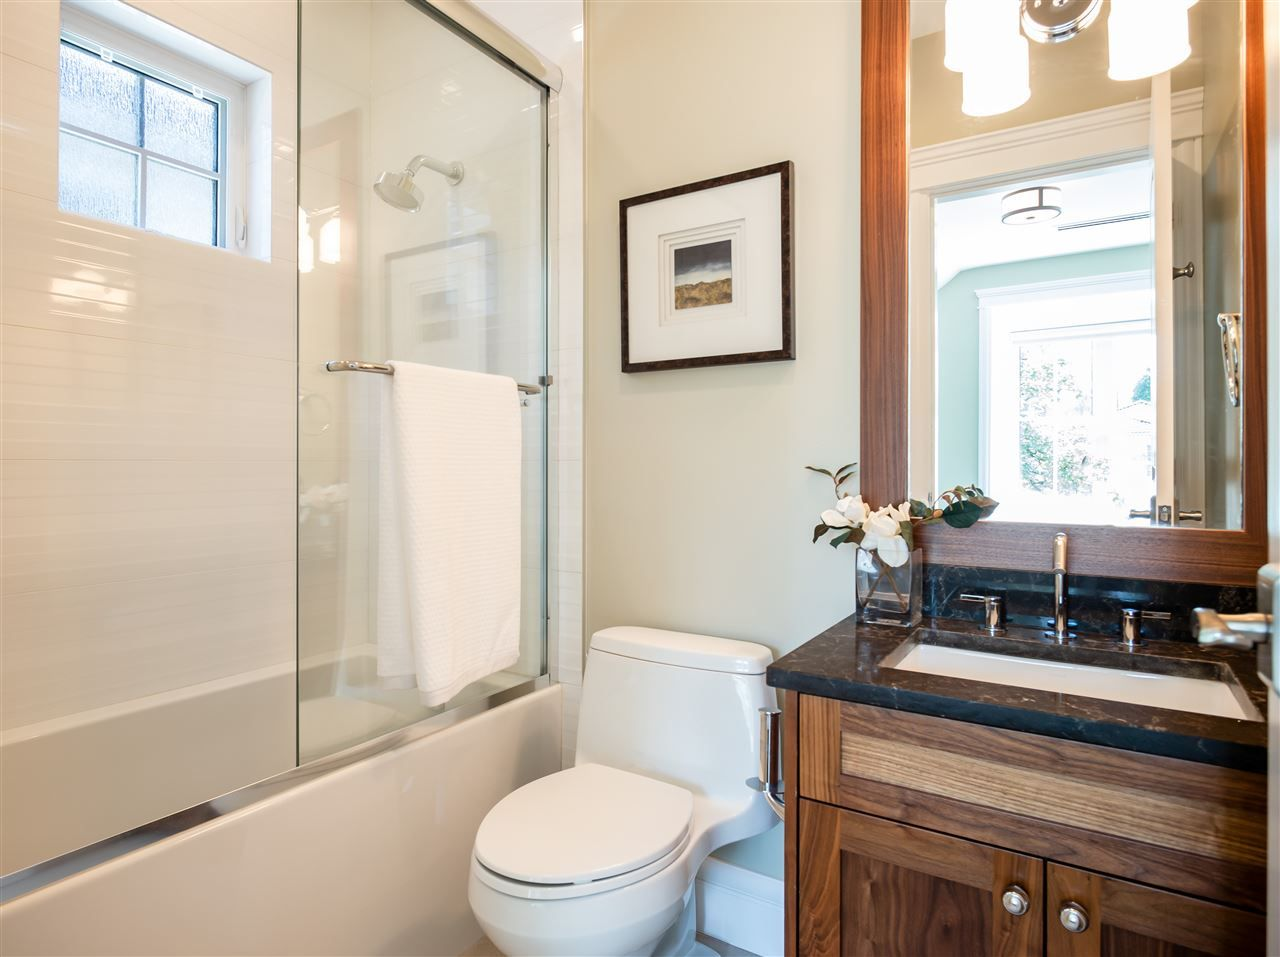 """Photo 17: Photos: 3535 W 23RD Avenue in Vancouver: Dunbar House for sale in """"DUNBAR"""" (Vancouver West)  : MLS®# R2369247"""